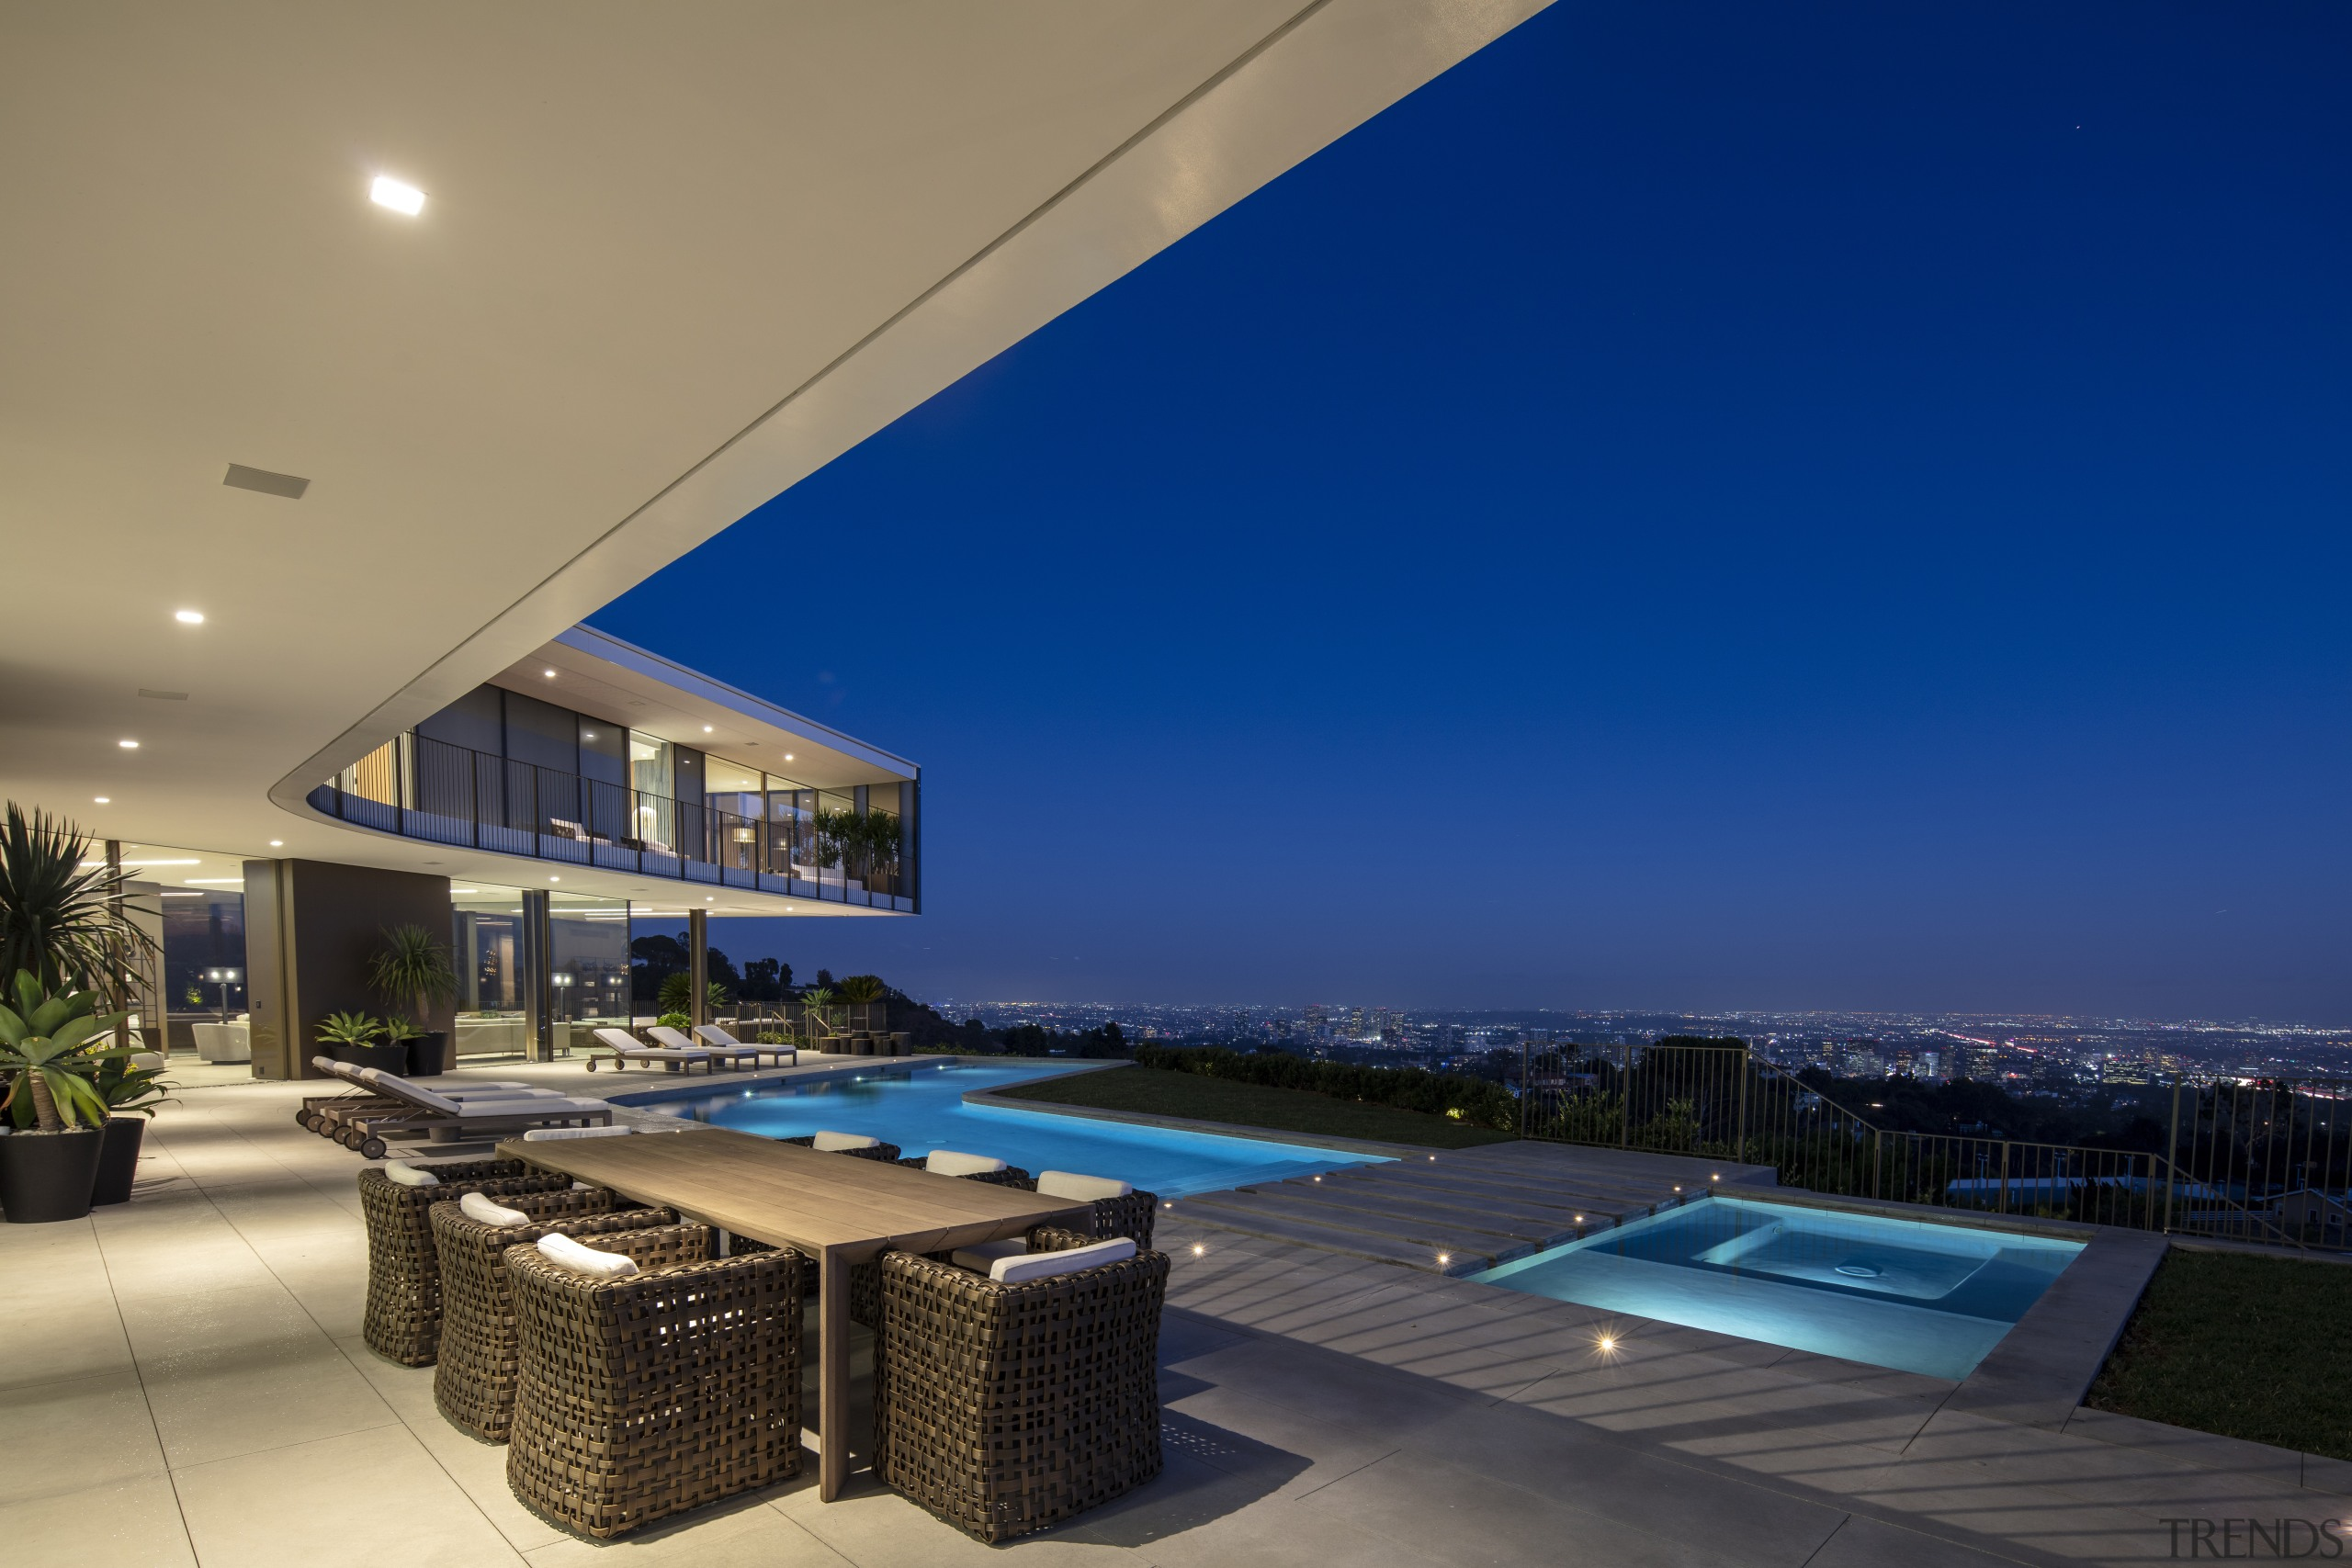 Balancing scale, views and comfort was the biggest architecture, ceiling, design, furniture, home, house, lighting, LED, swimming pool, spa, outdoor patio, spfa